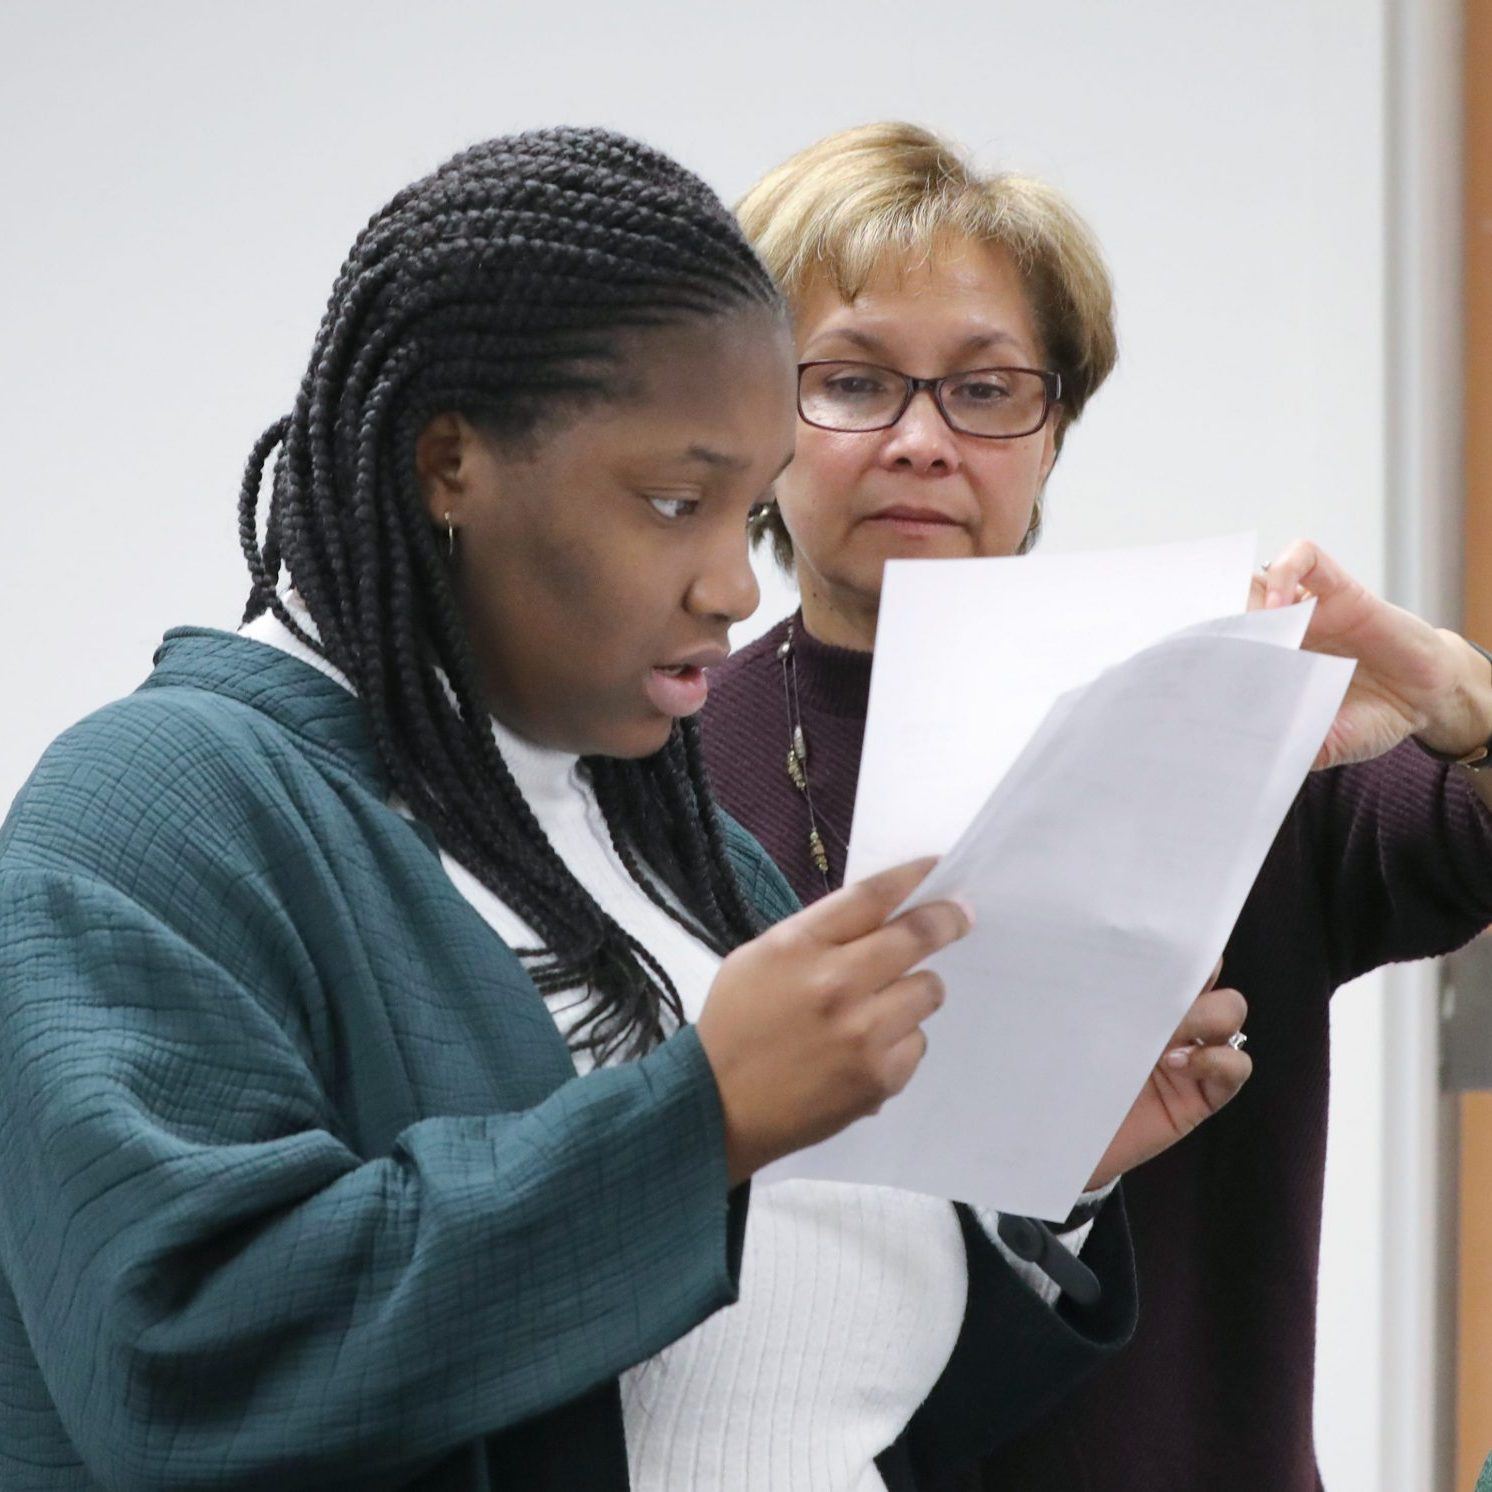 Image description: Two women in an office hold up and review paperwork.